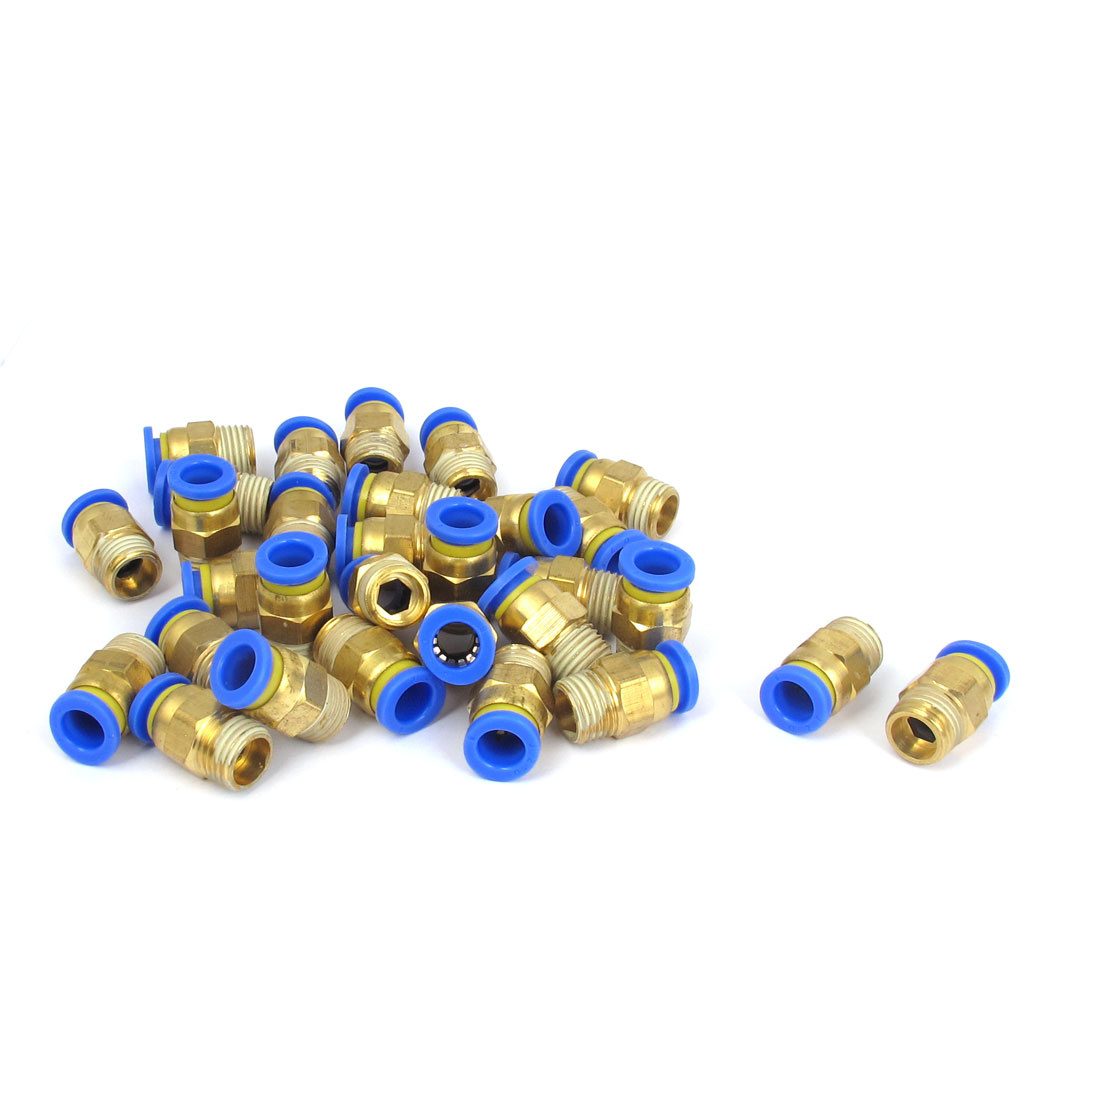 30PCS 1/4SBP Male Thread to 8mm Tube Push in Connect Straight Quick Fittings